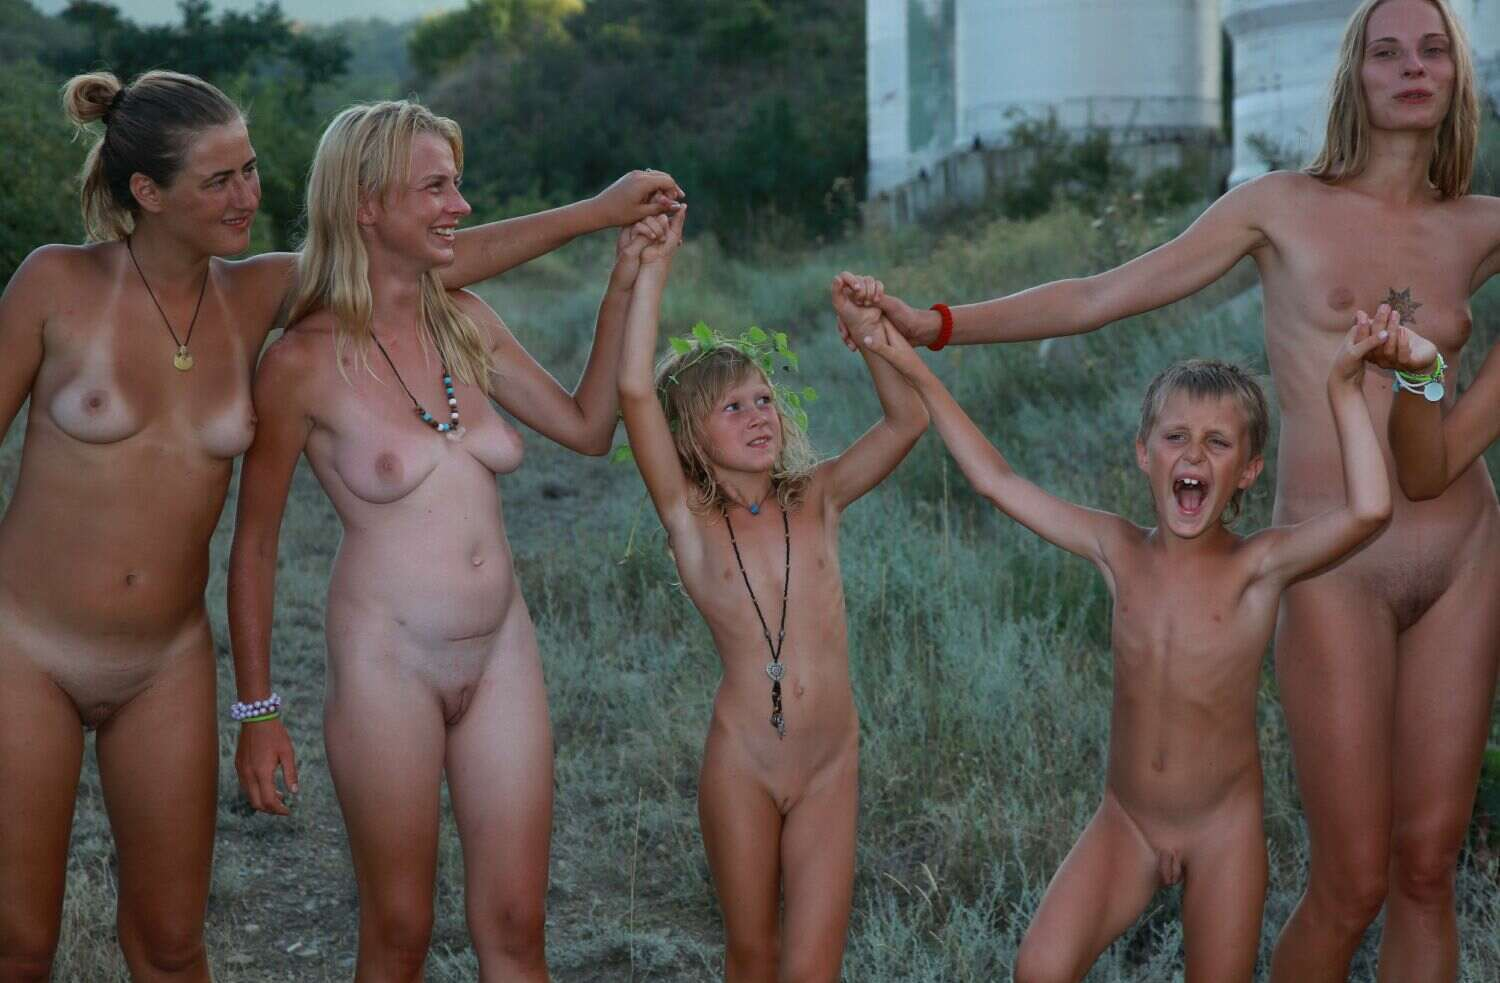 family naturists pictures